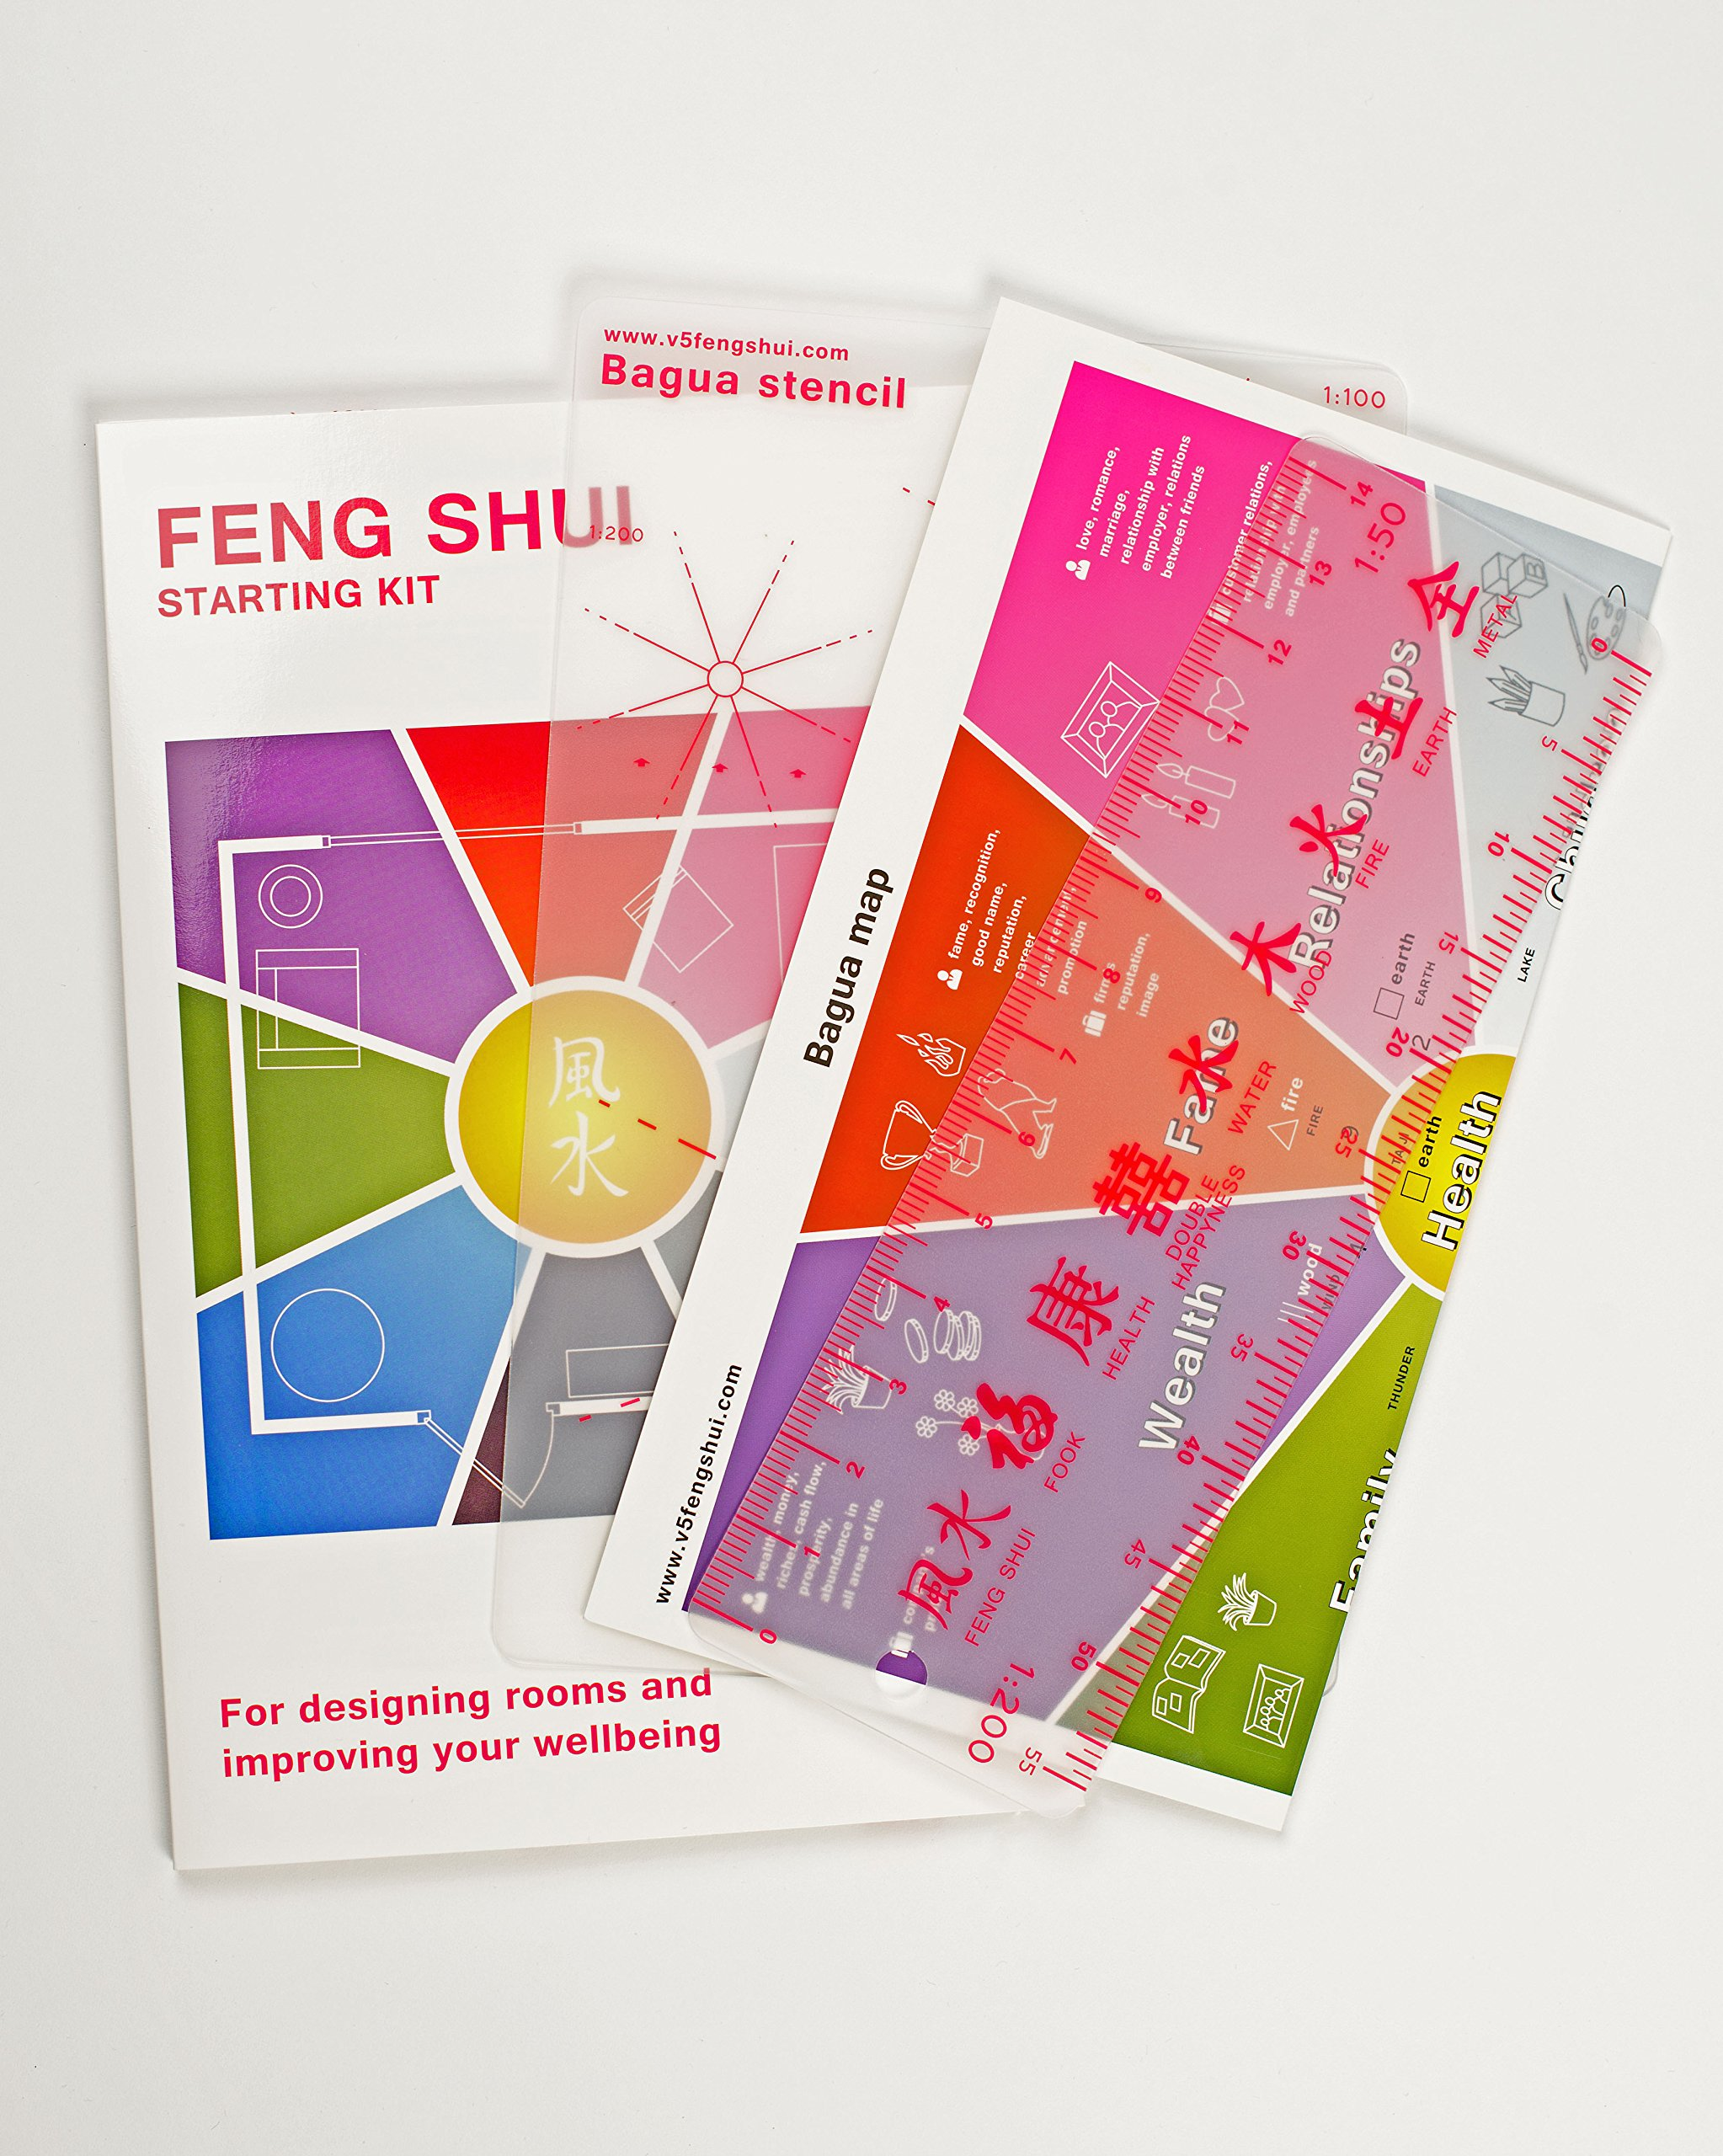 Not absolutely Art asian feng gracious living shui style